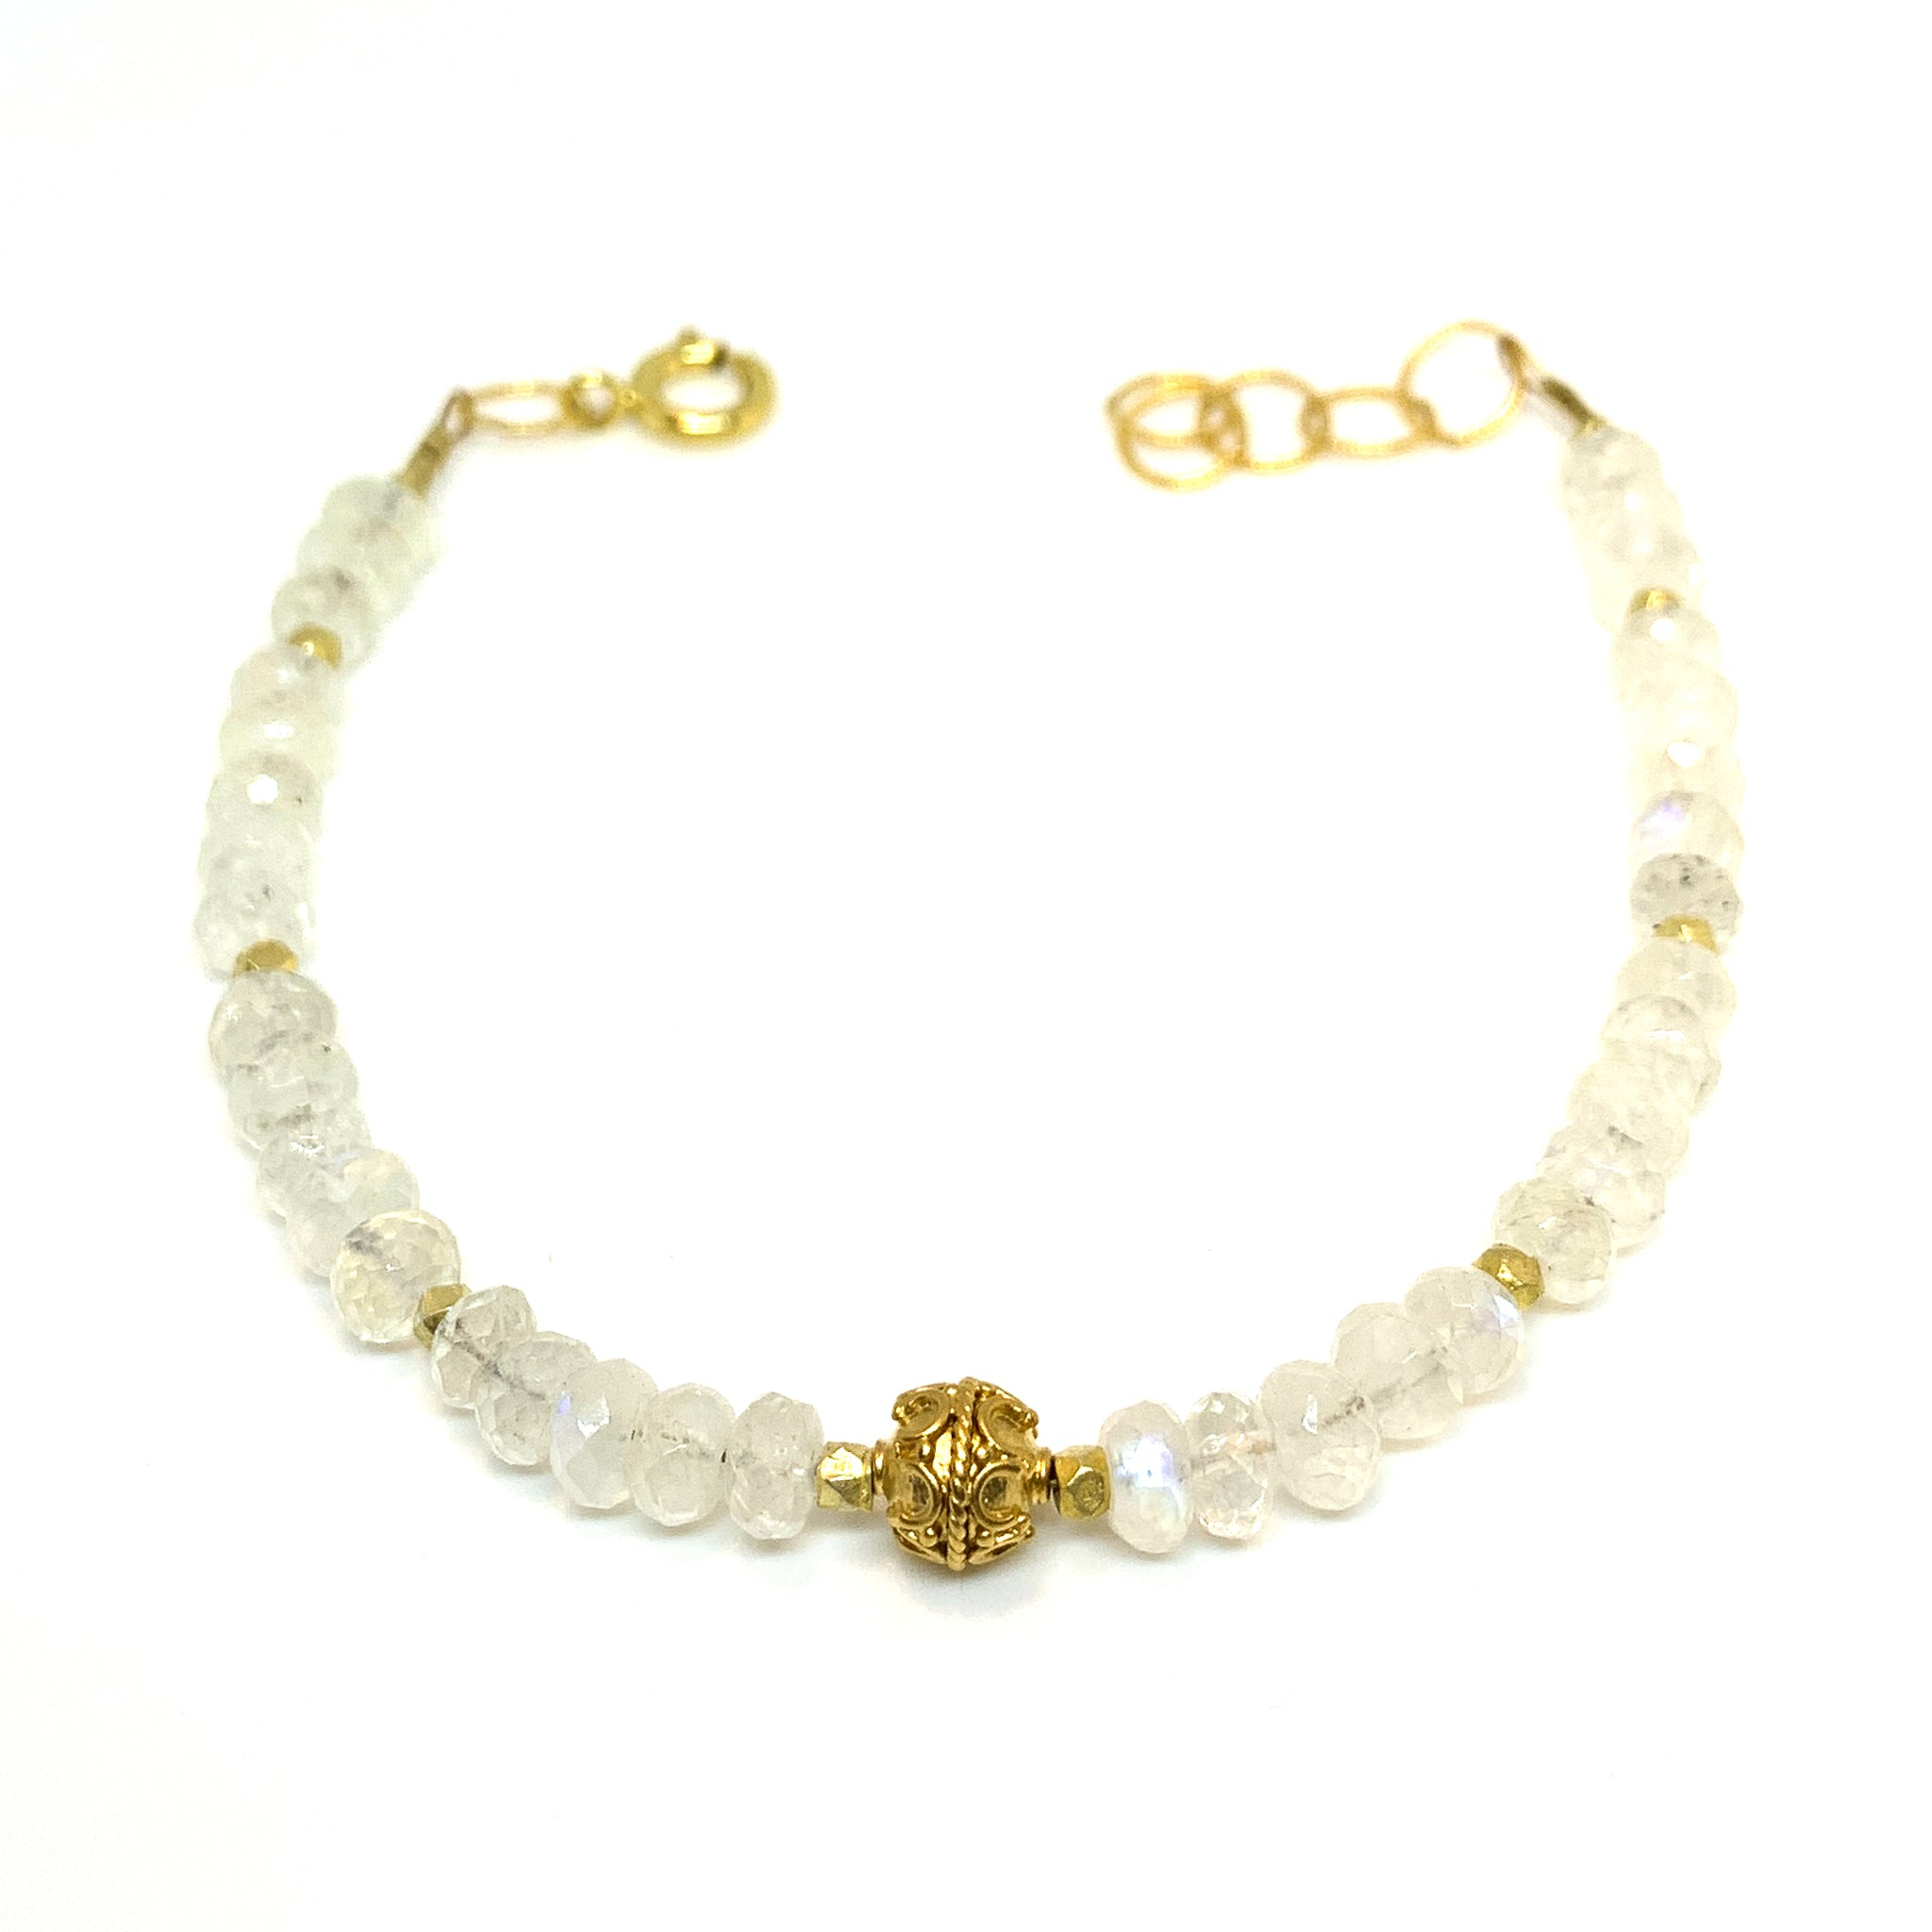 faceted moonstone and vermeil bead bracelet by eve black jewelry, Hawaii